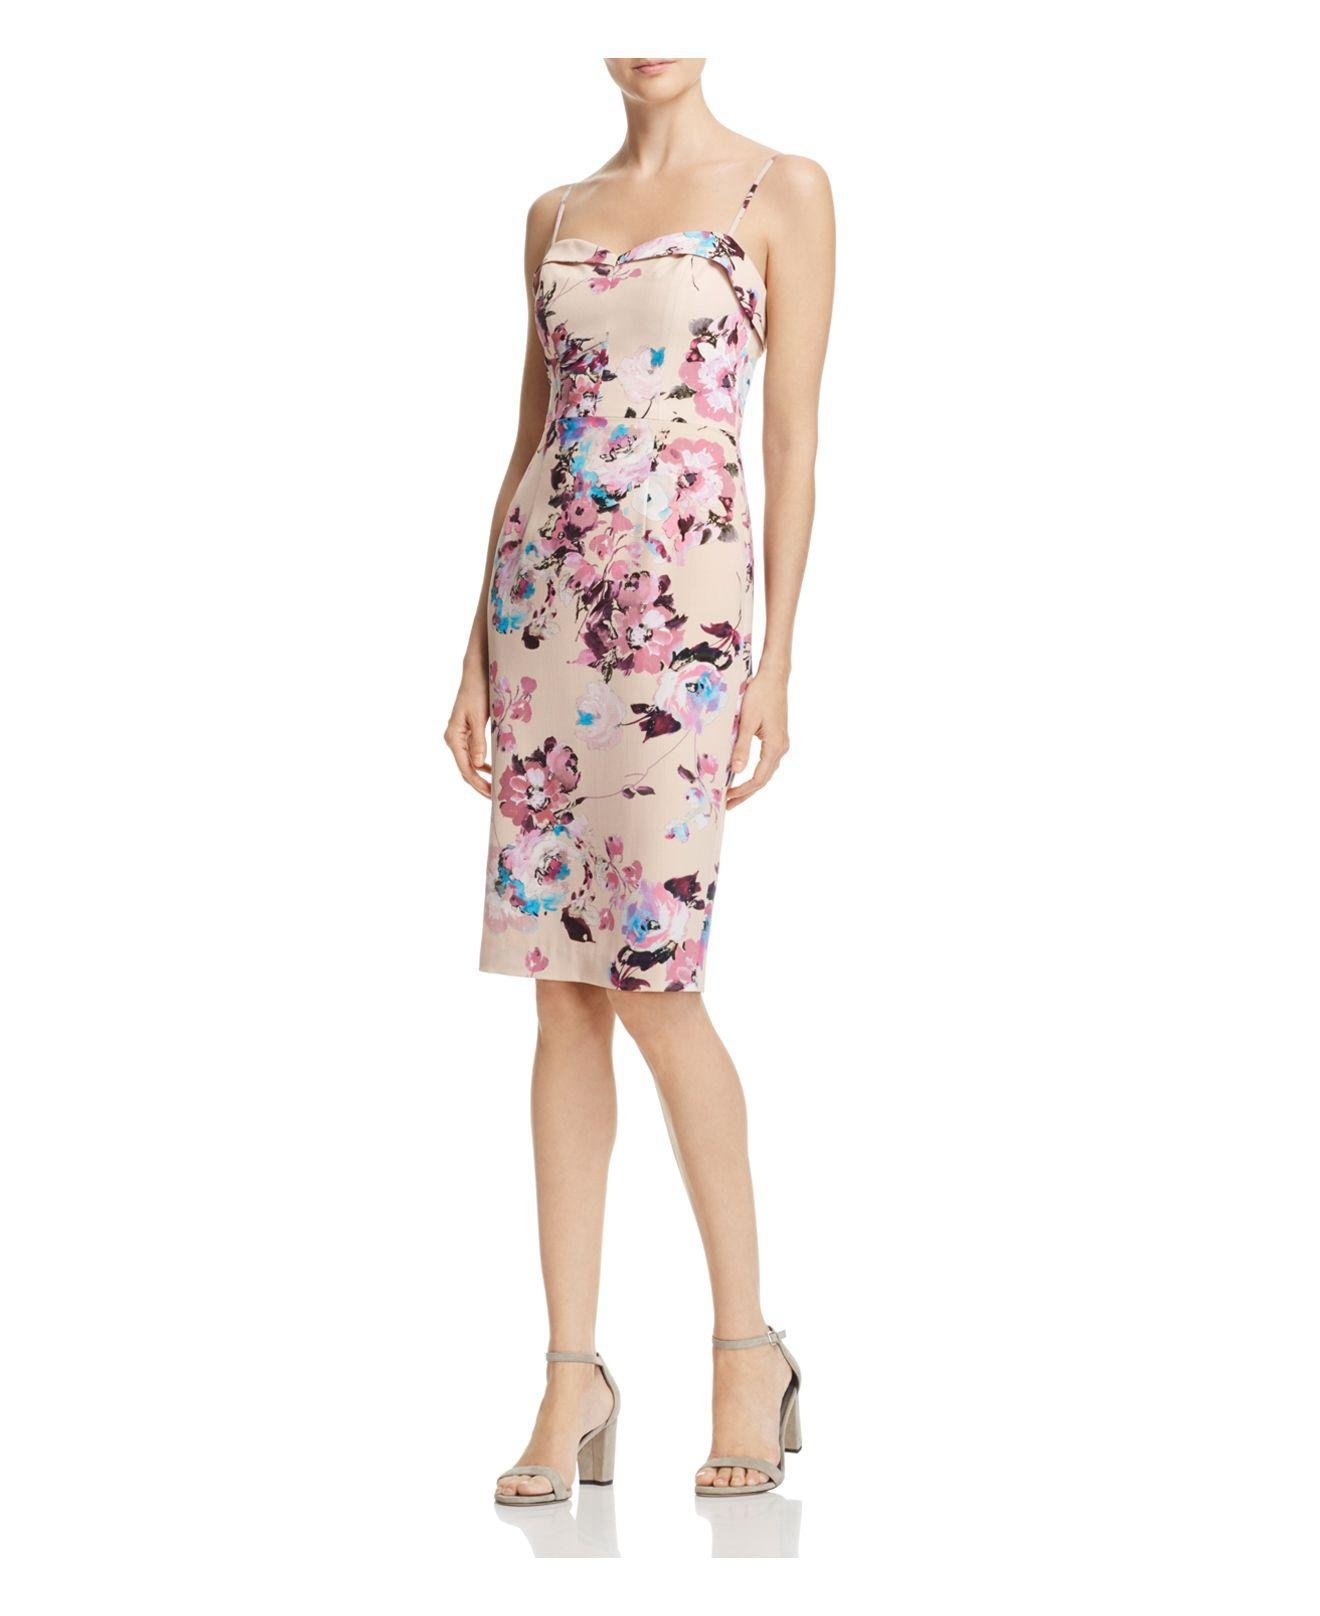 8256bc49e89 Lyst - Black Halo Clover Floral-print Dress in Pink